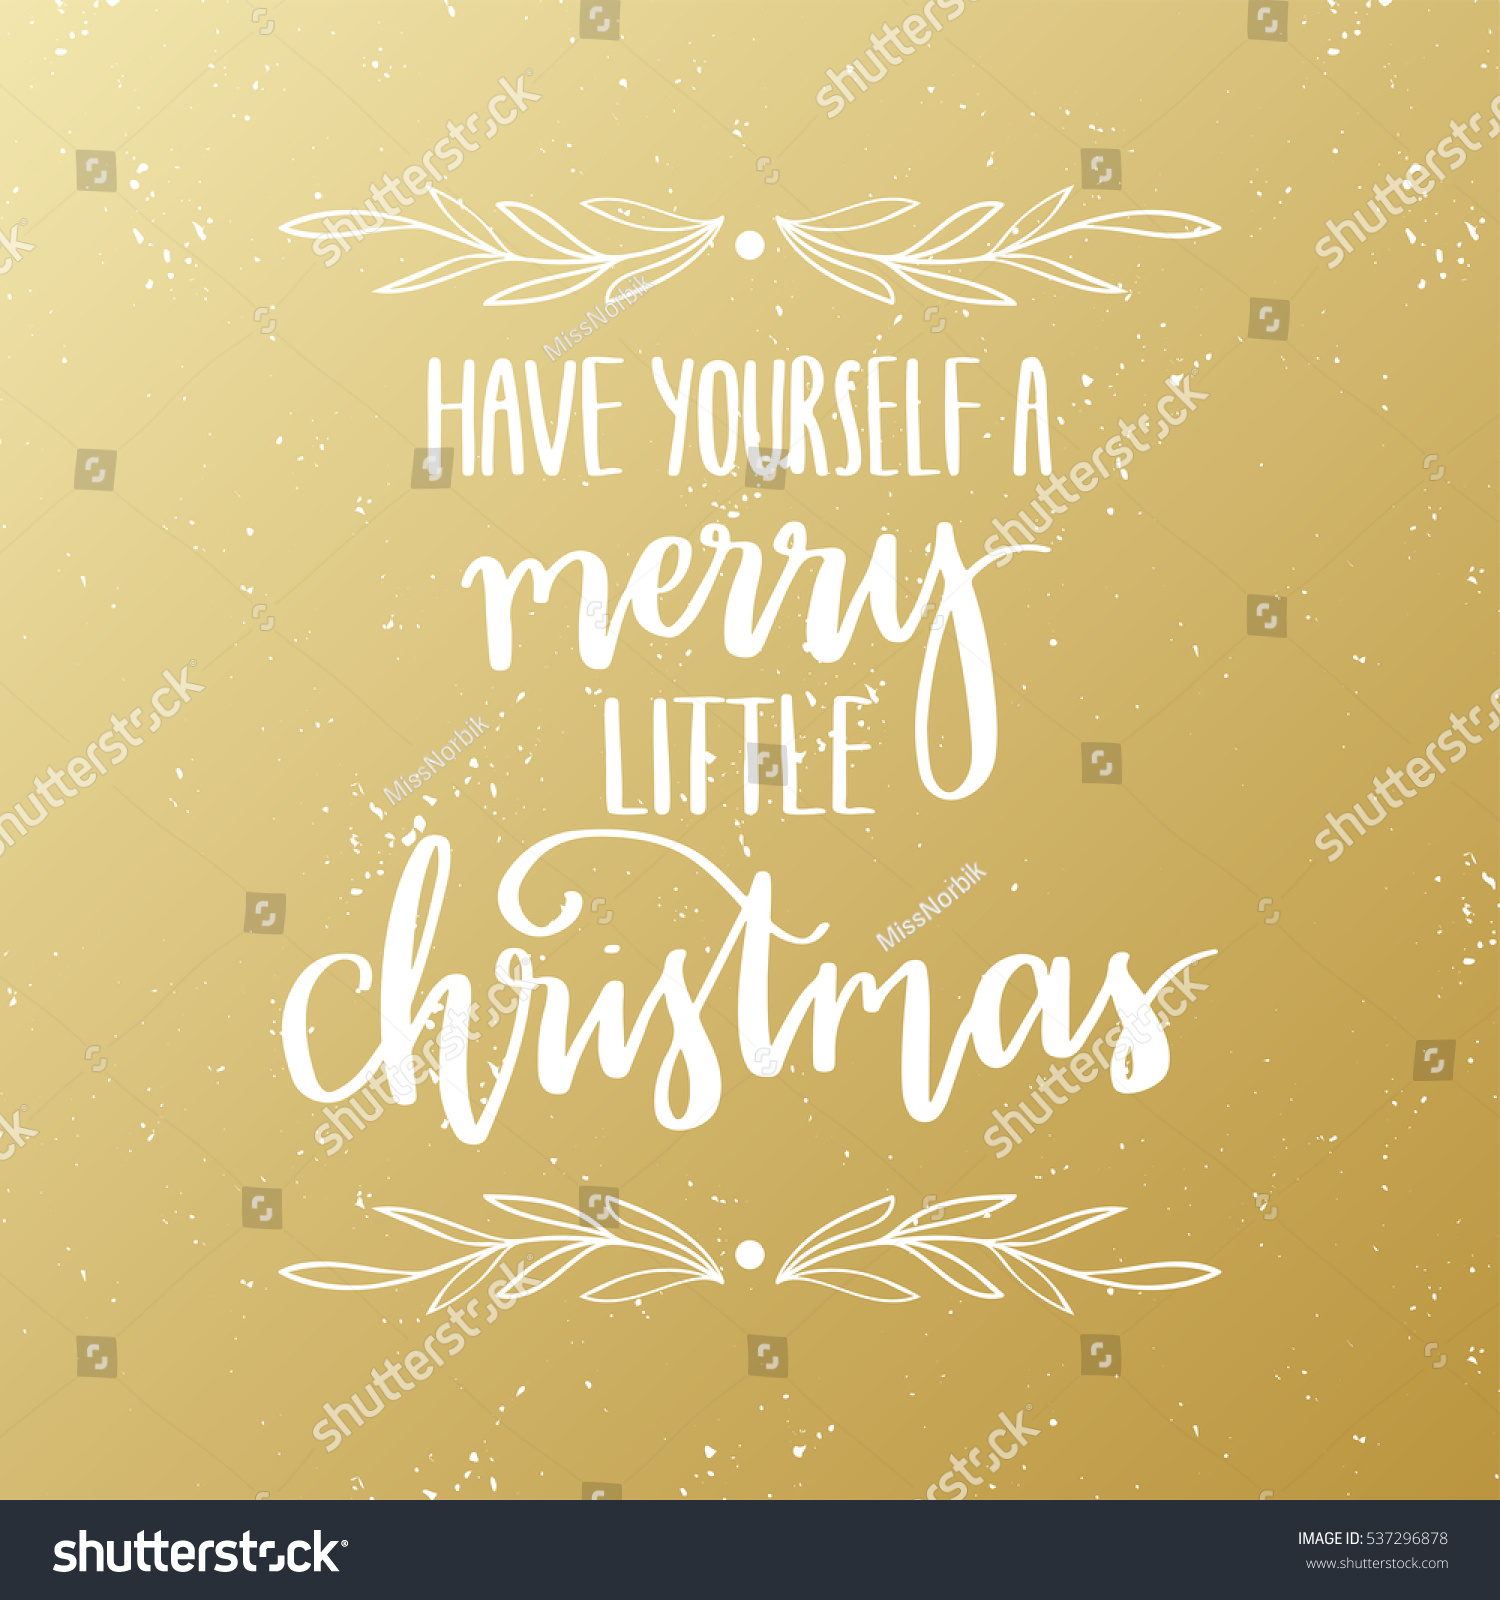 Have Yourself a Merry Little Christmas - typographic design greeting ...